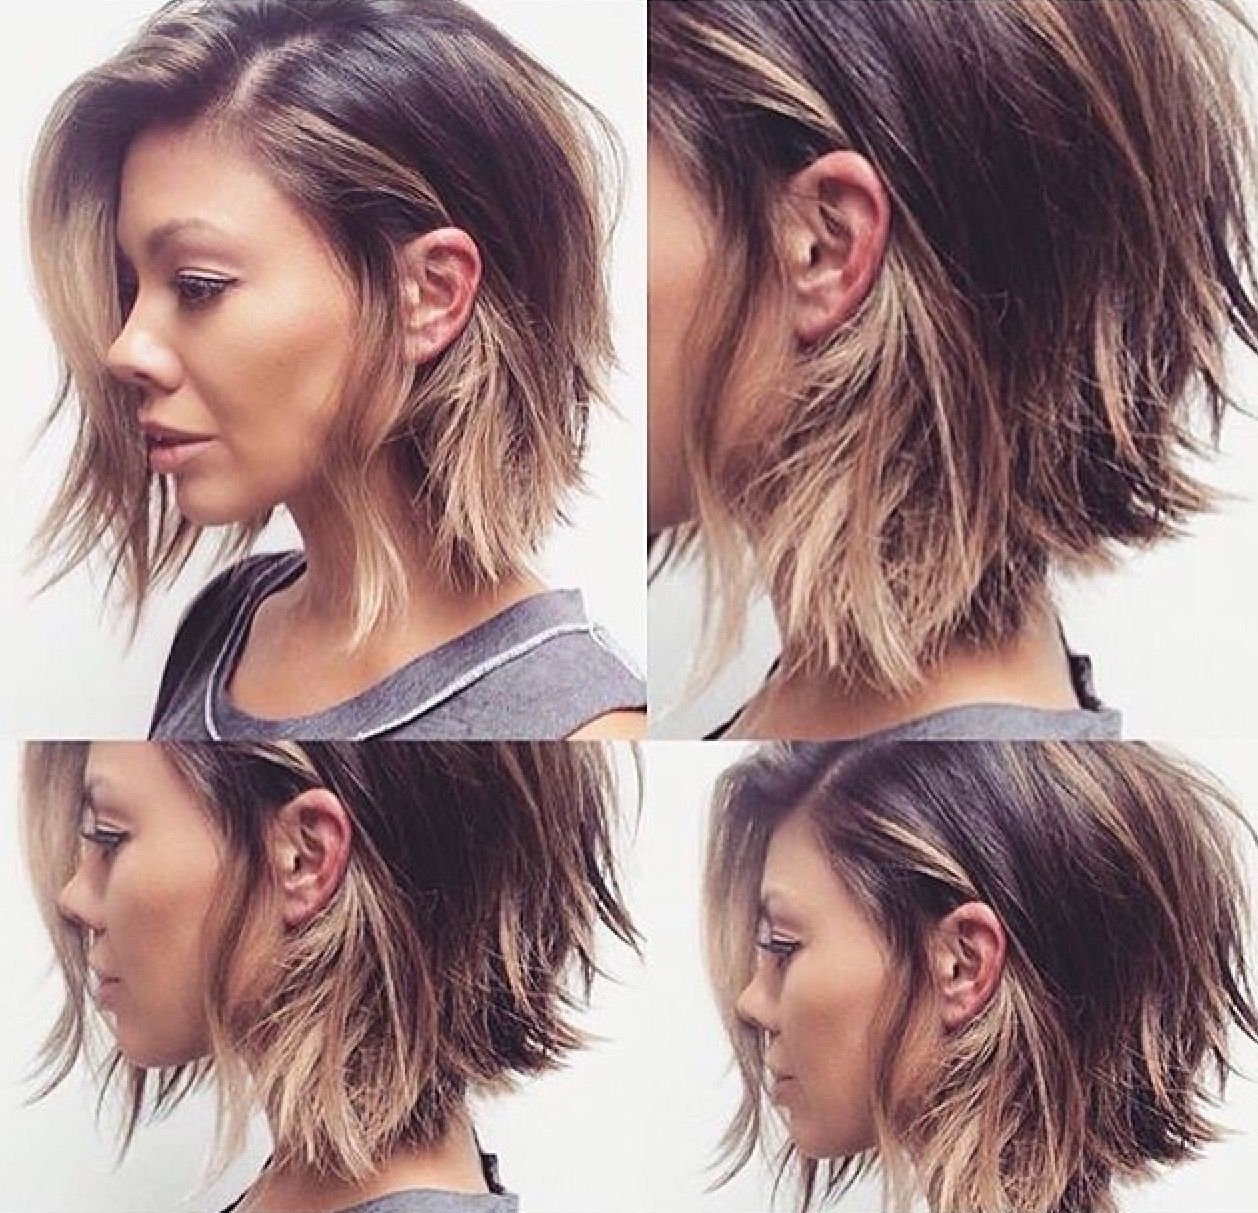 Pin By Tsr Services Trendy On Hairstyles To Try: Tina Can You Do This Cut? An Color?